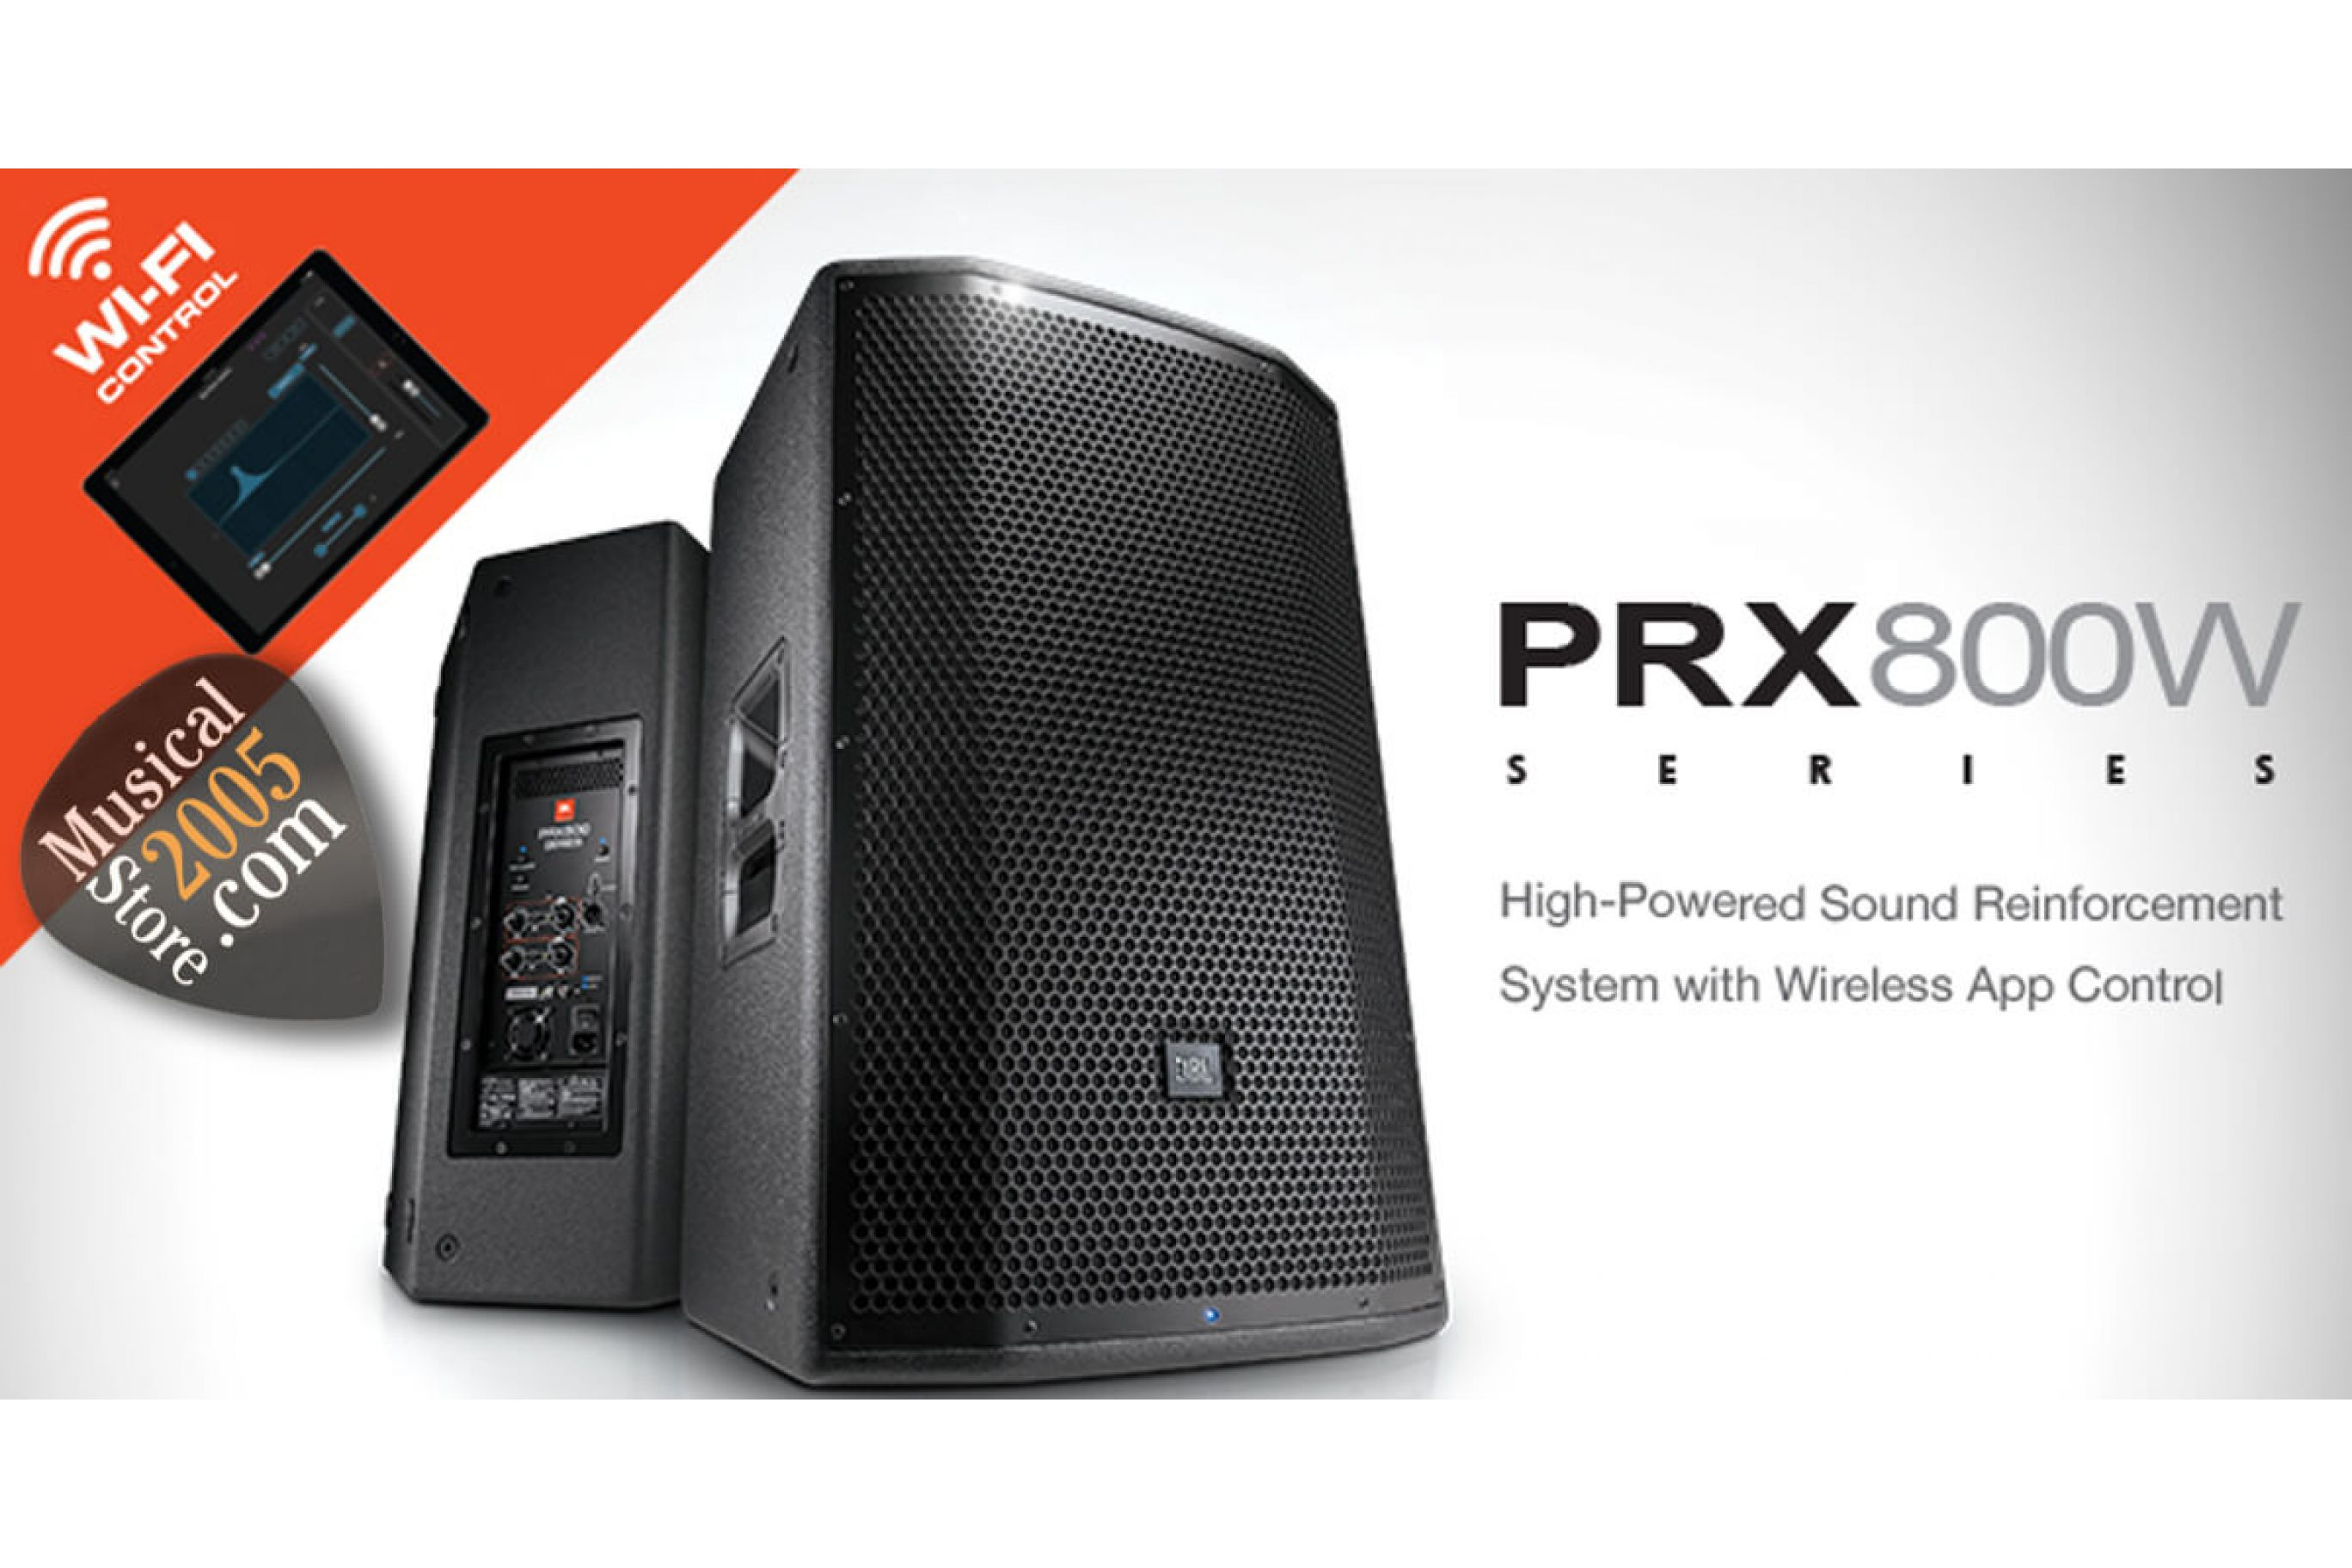 Nuova serie JBL PRX 800 con controllo Wireless